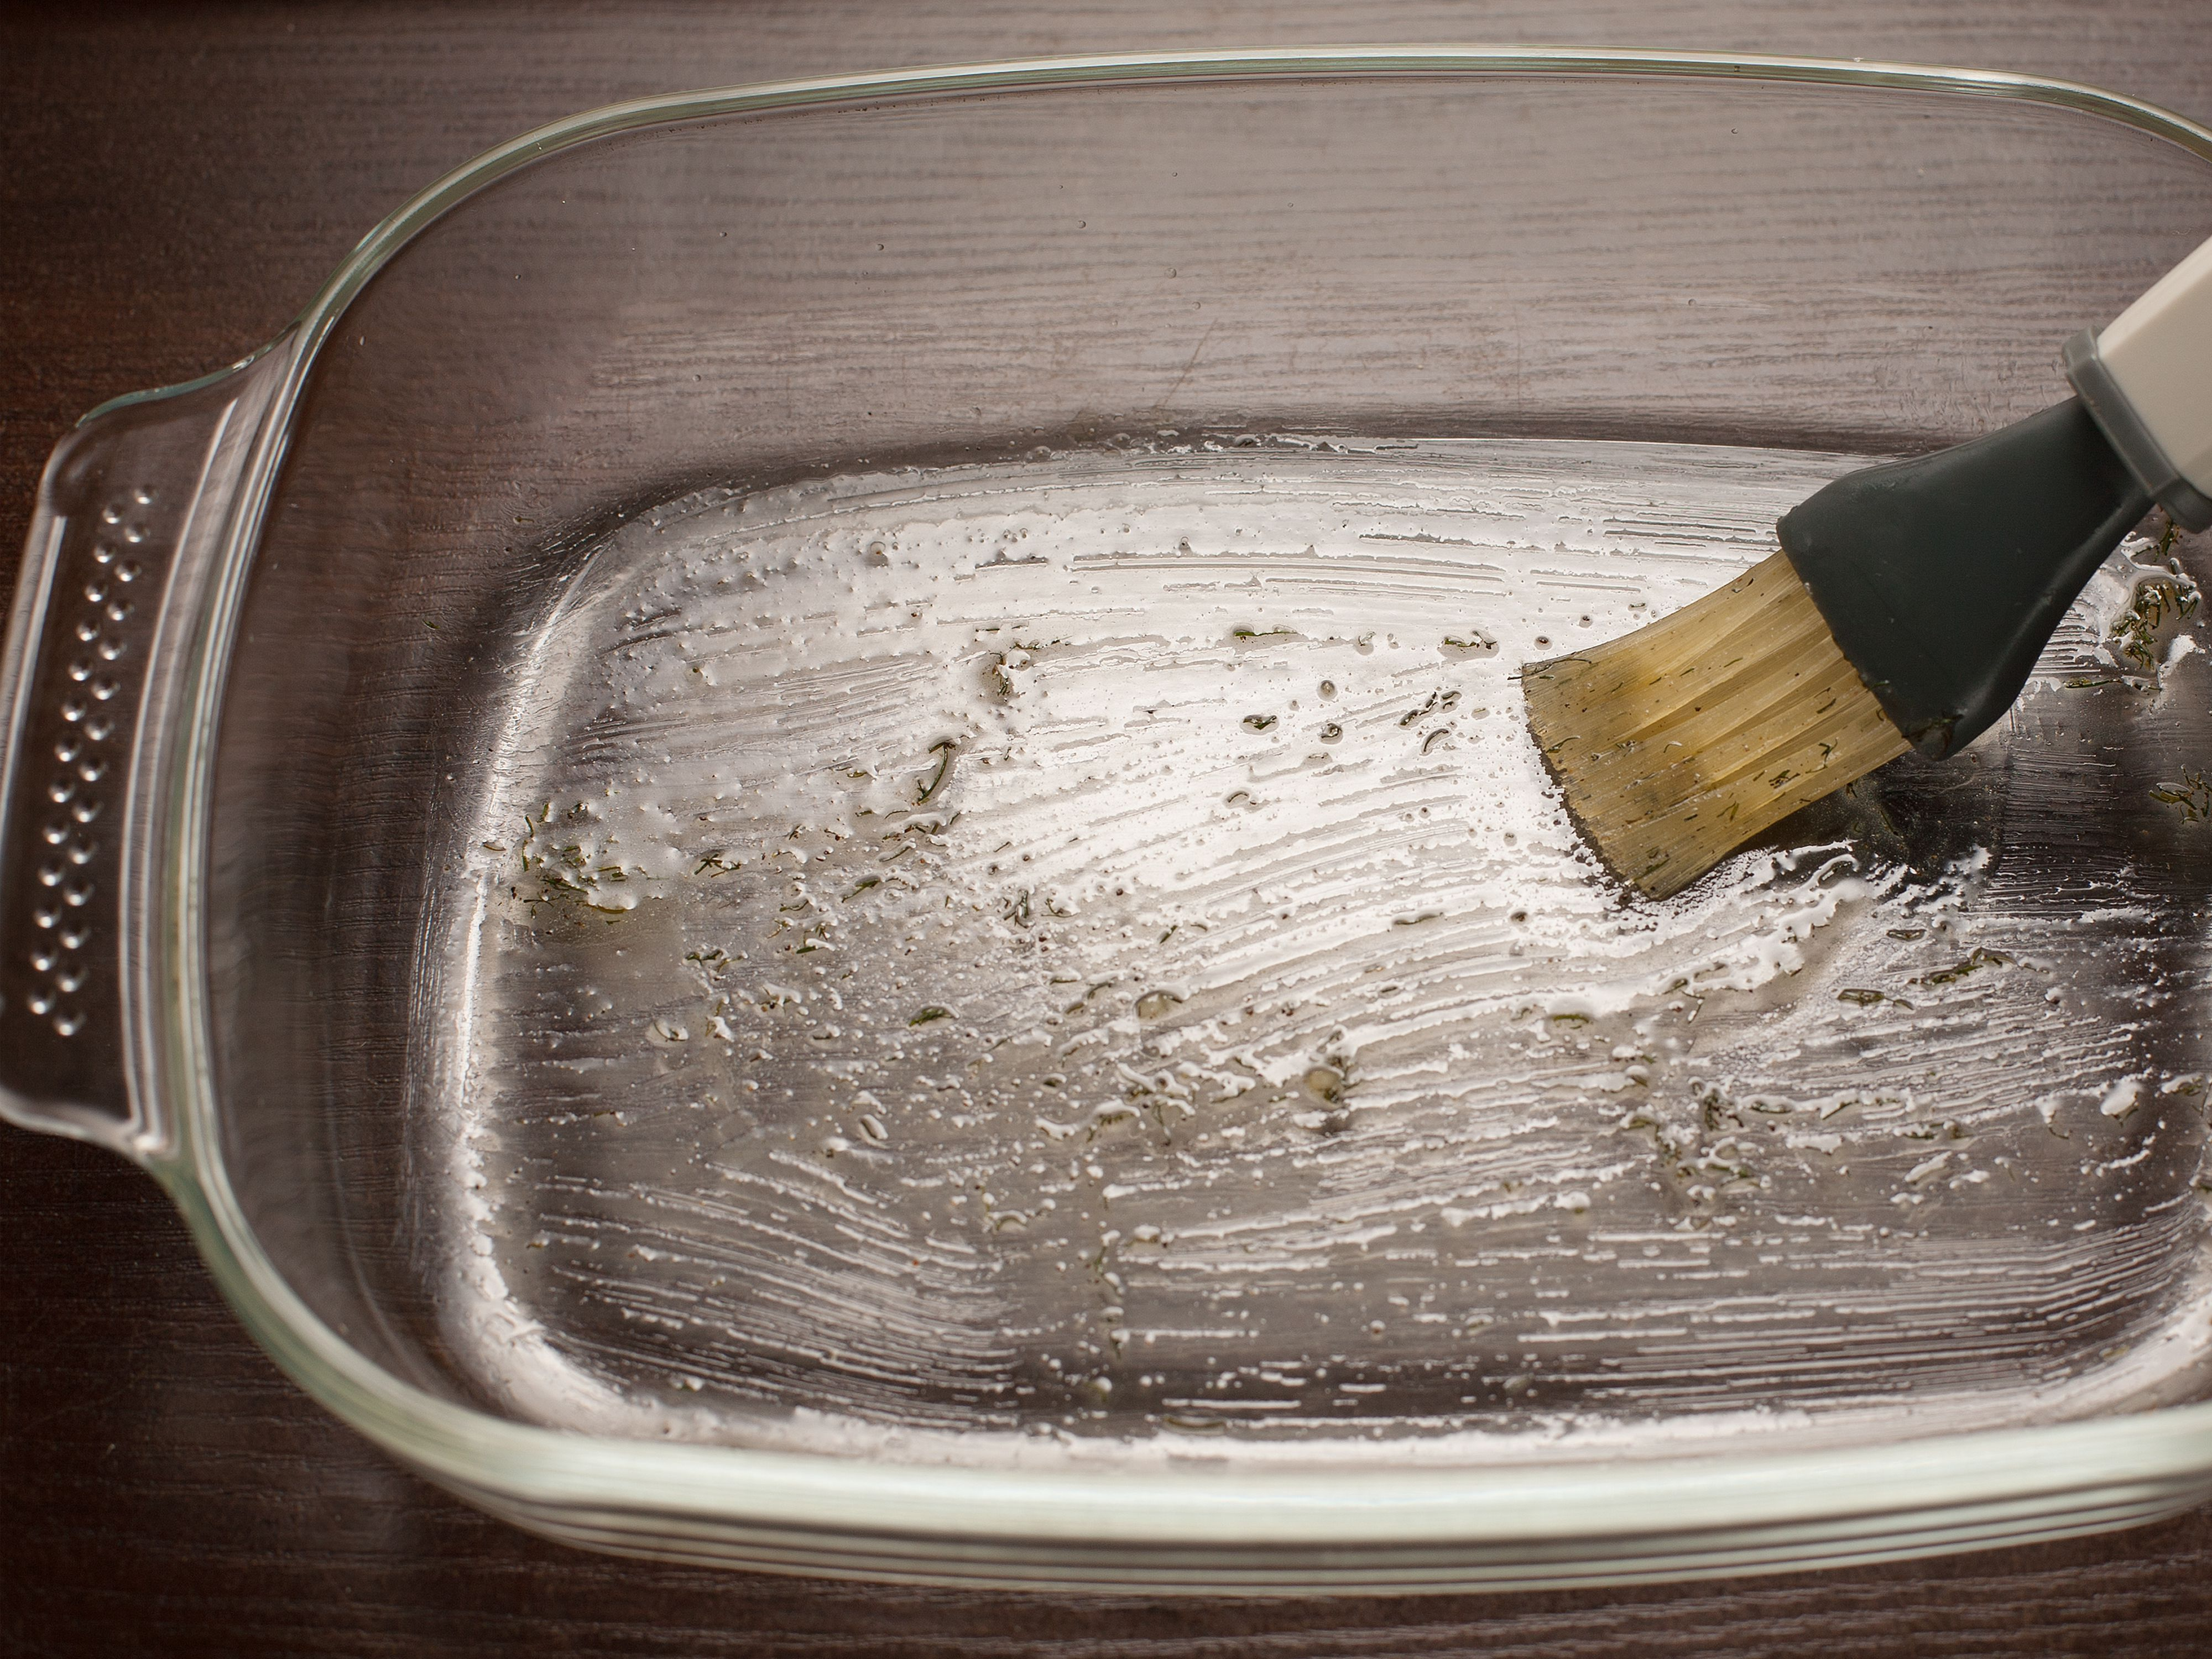 Brushing a baking dish with butter.